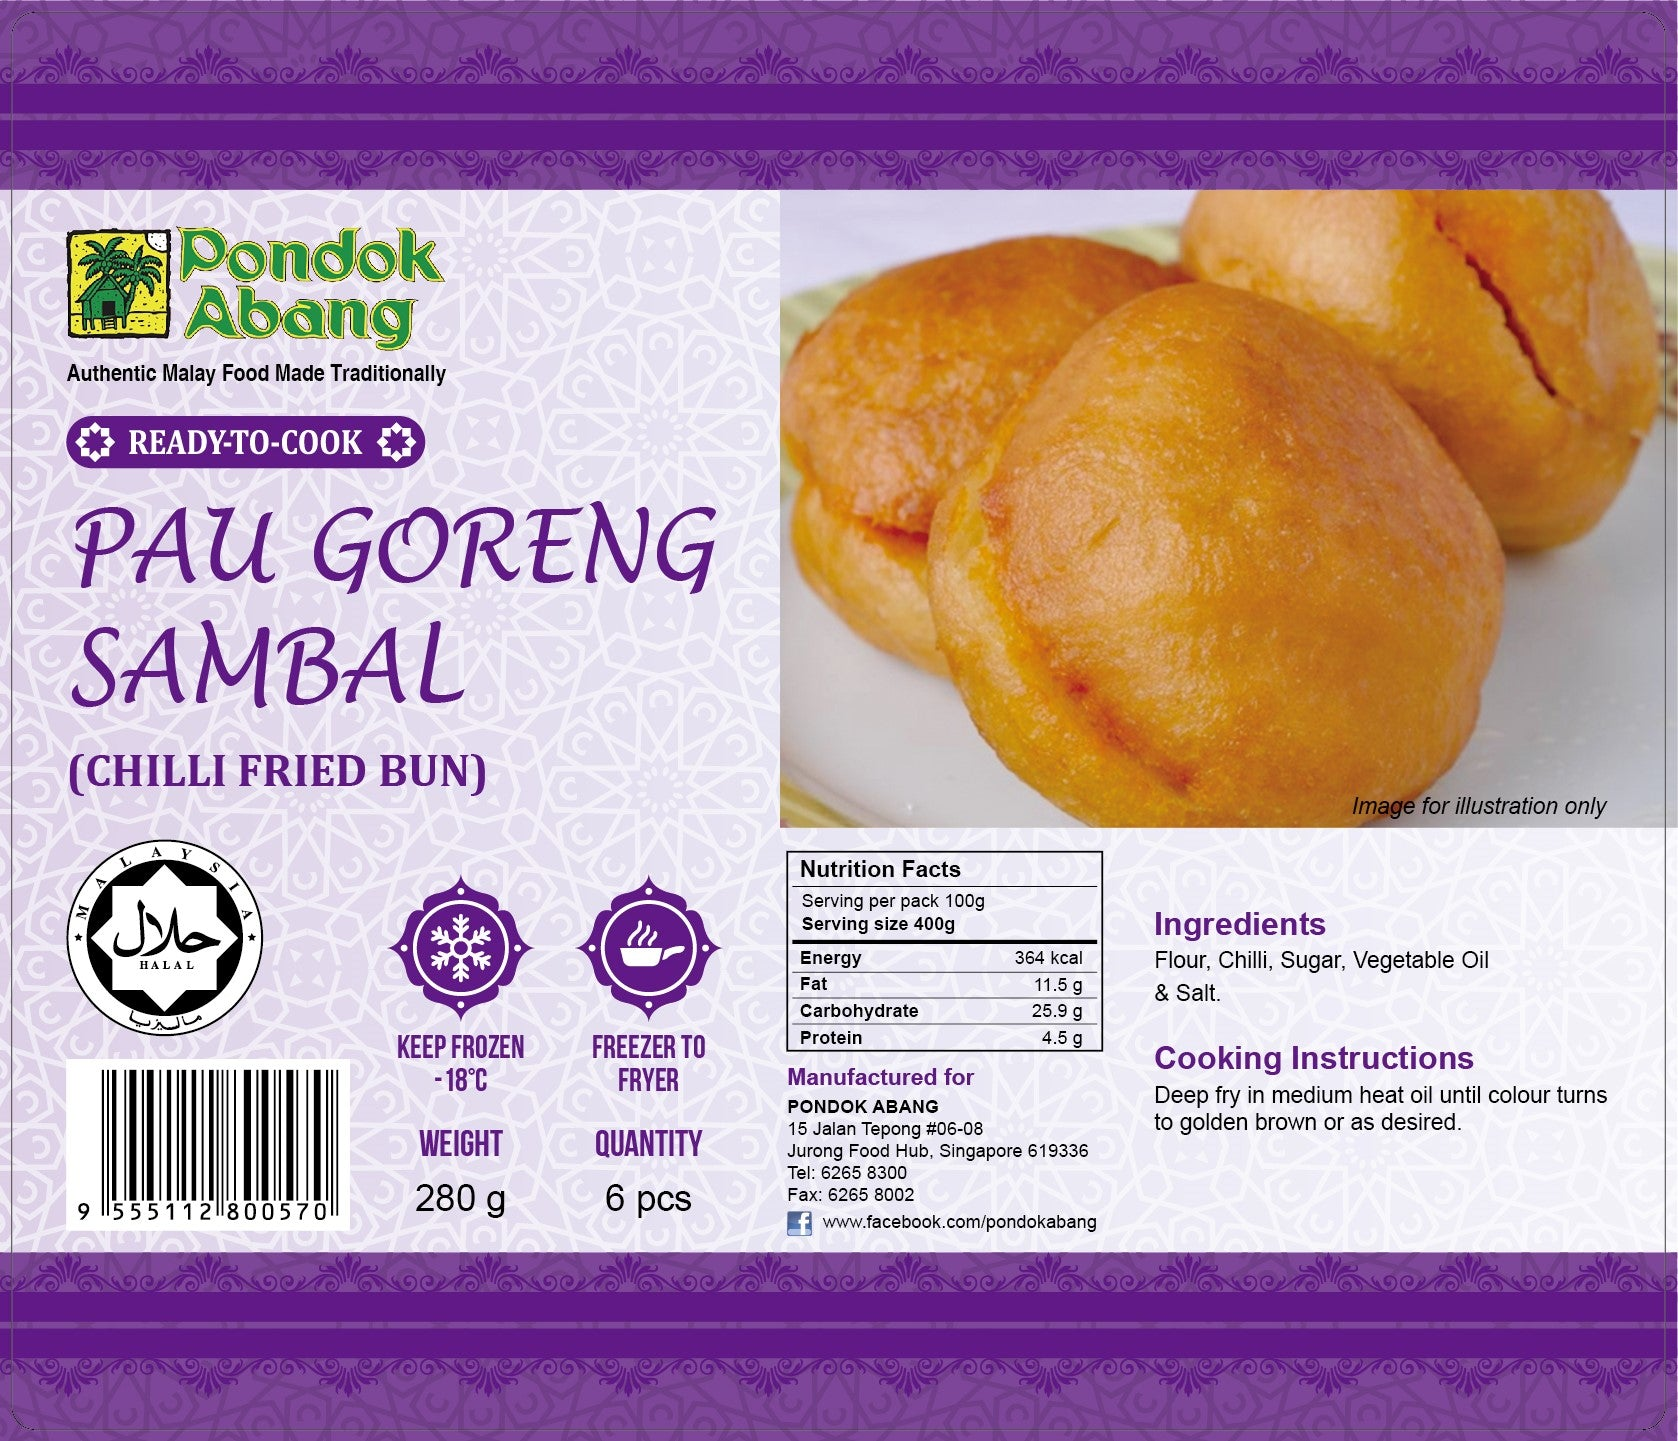 Chilli Fried Bun (Pau Goreng Sambal)